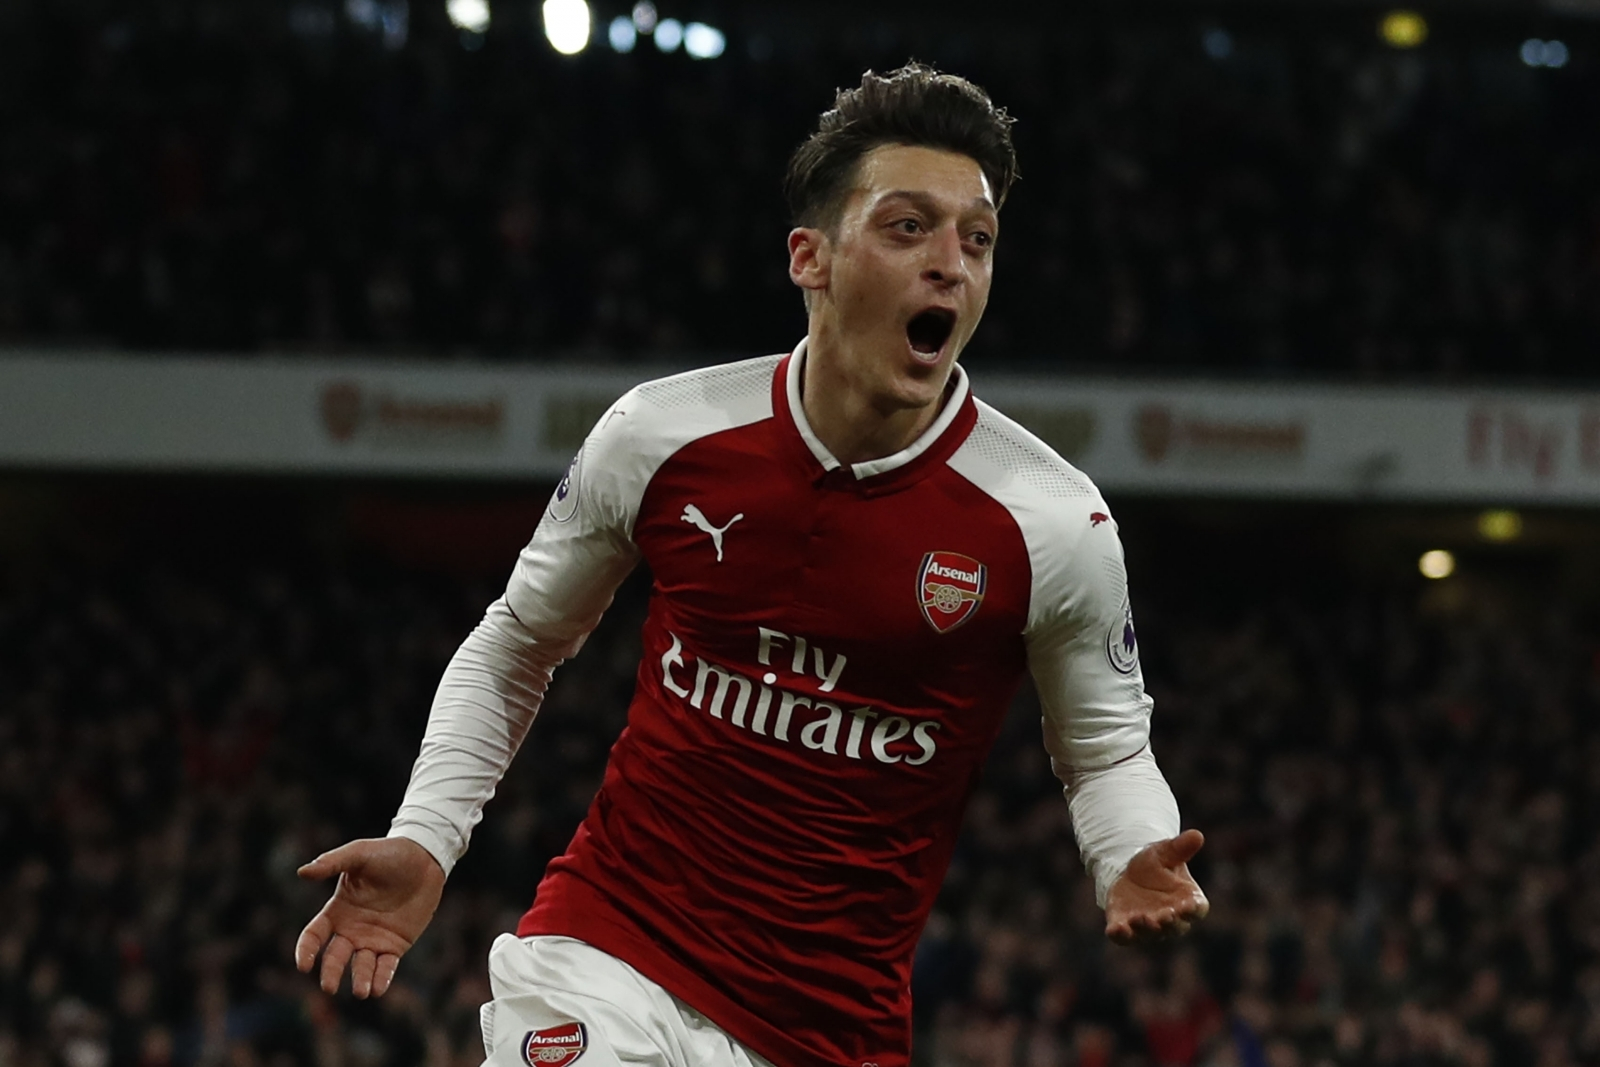 Mesut Ozil Wallpapers Hd Arsenal Mesut Ozil Signs New Three And A Half Year Deal At Arsenal